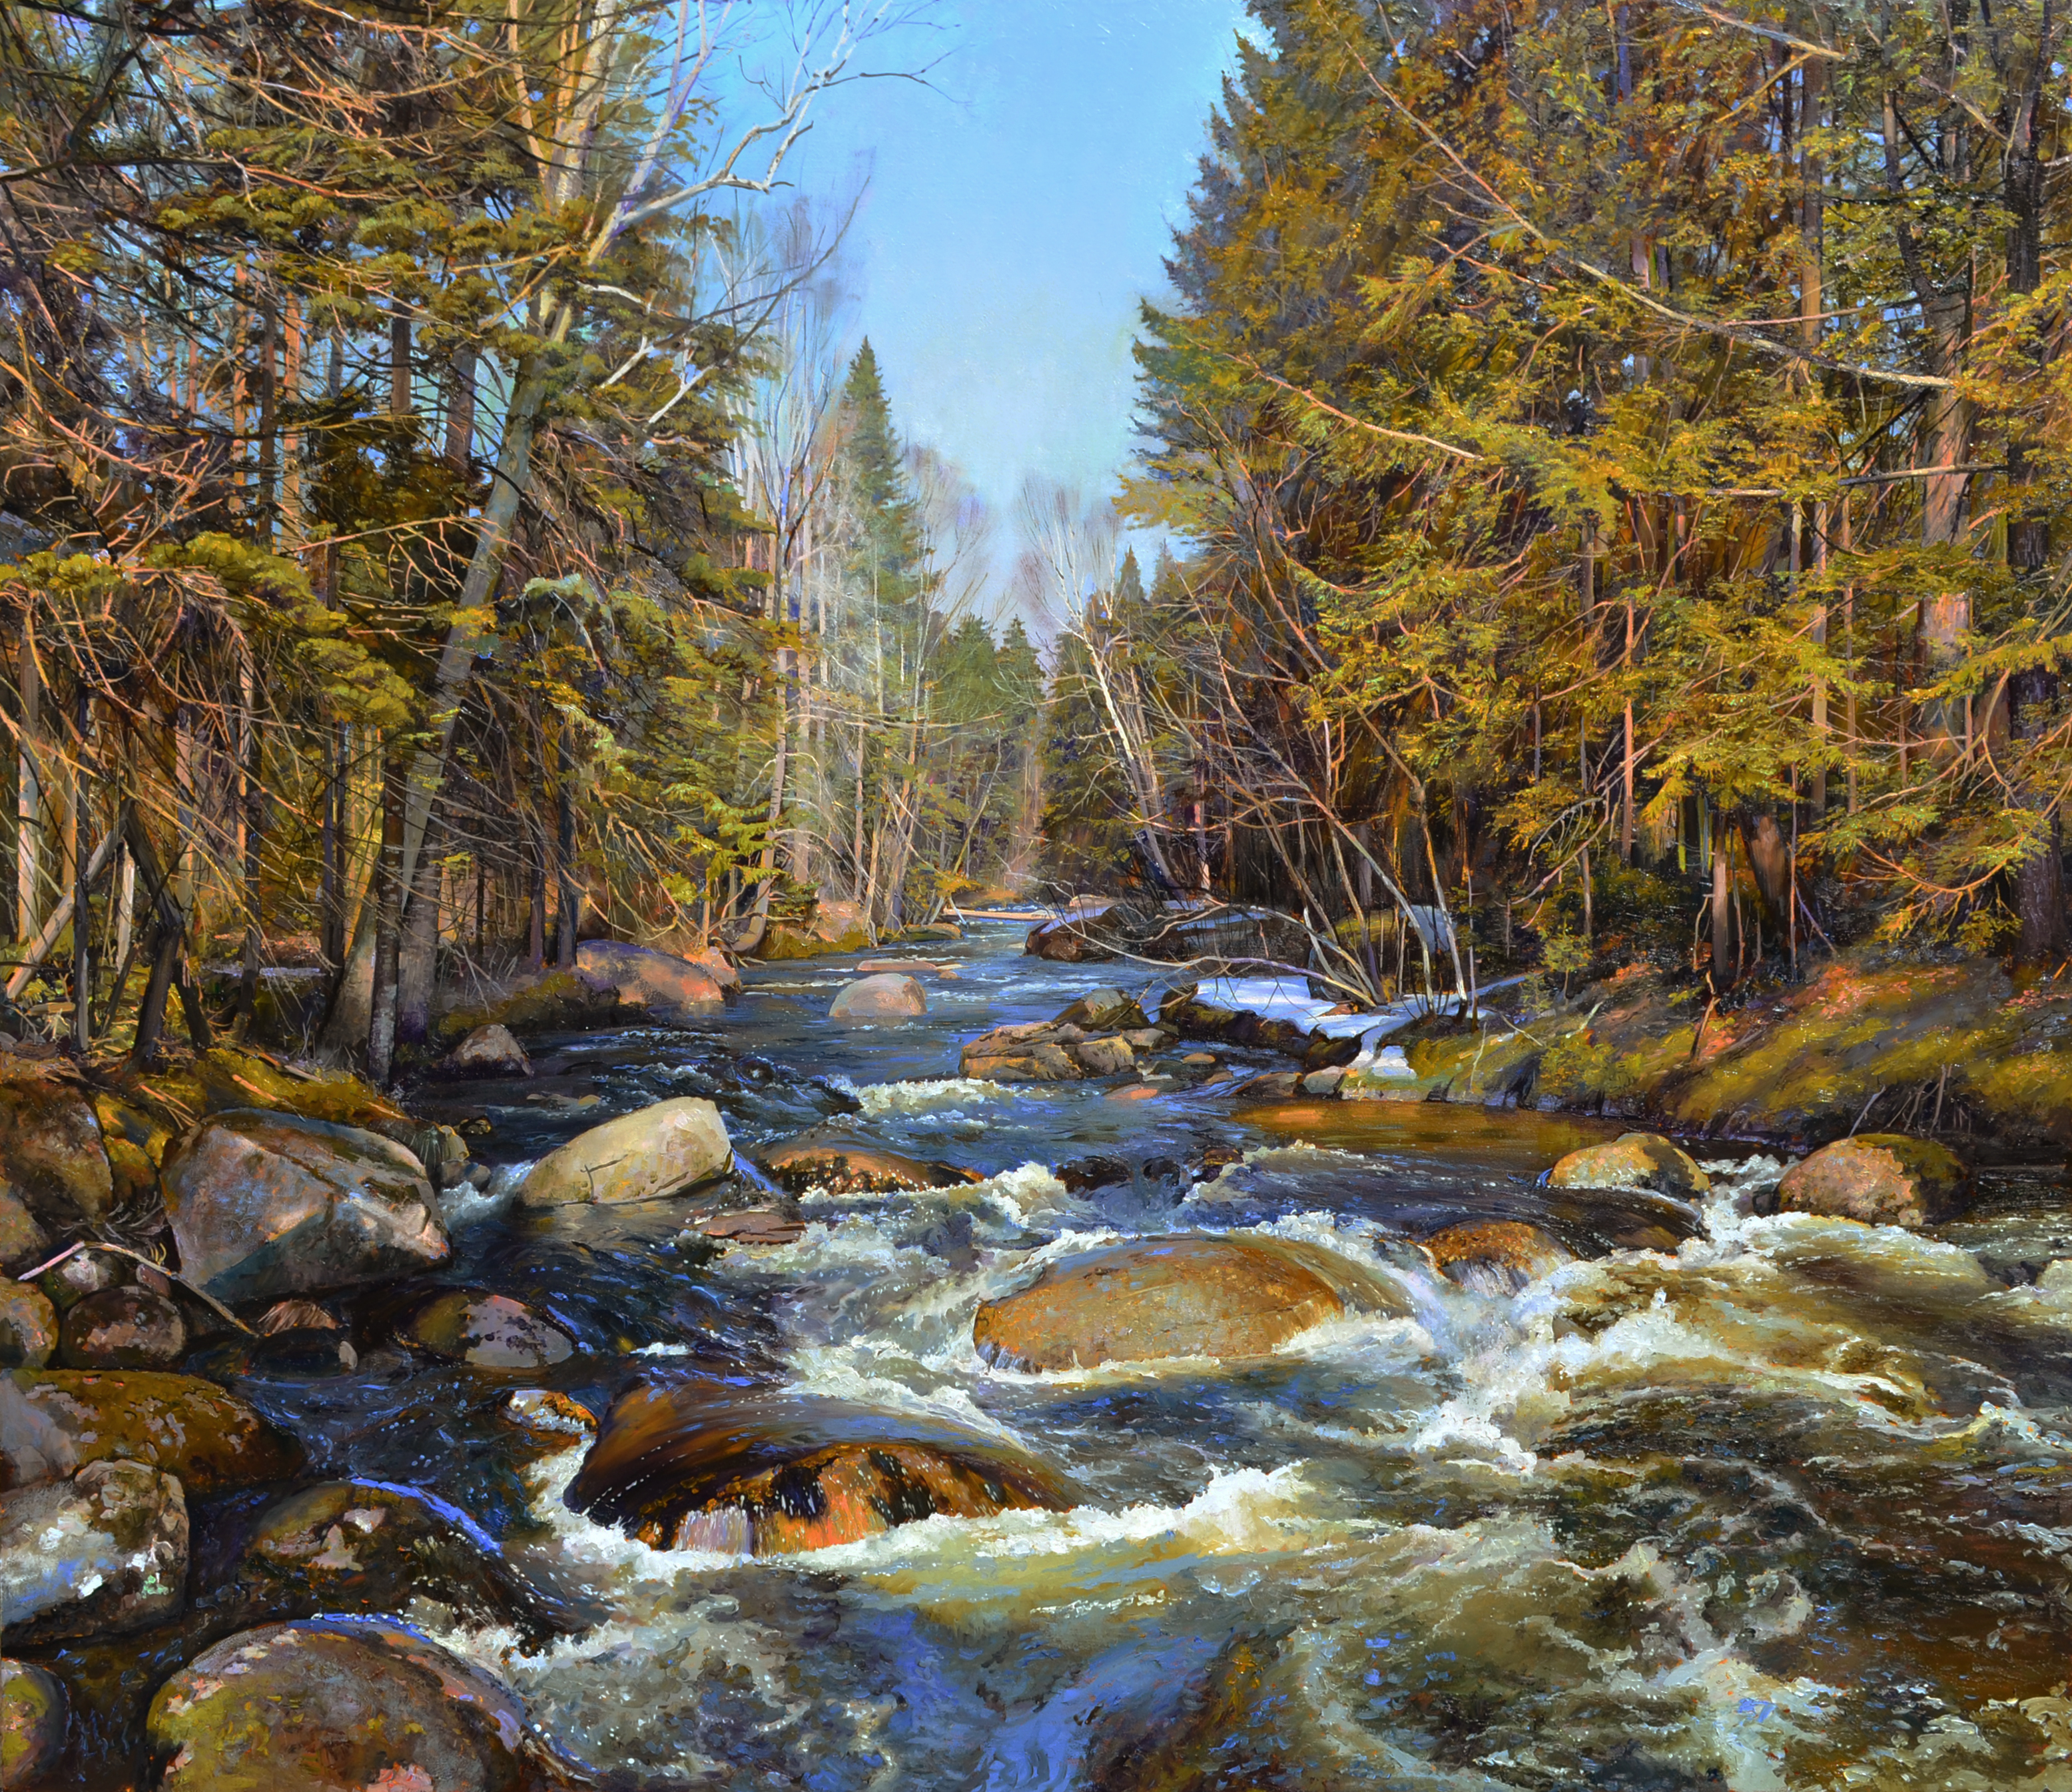 Bernd's Brook, Early Spring, 2013, oil on linen, 45 x 52 inches